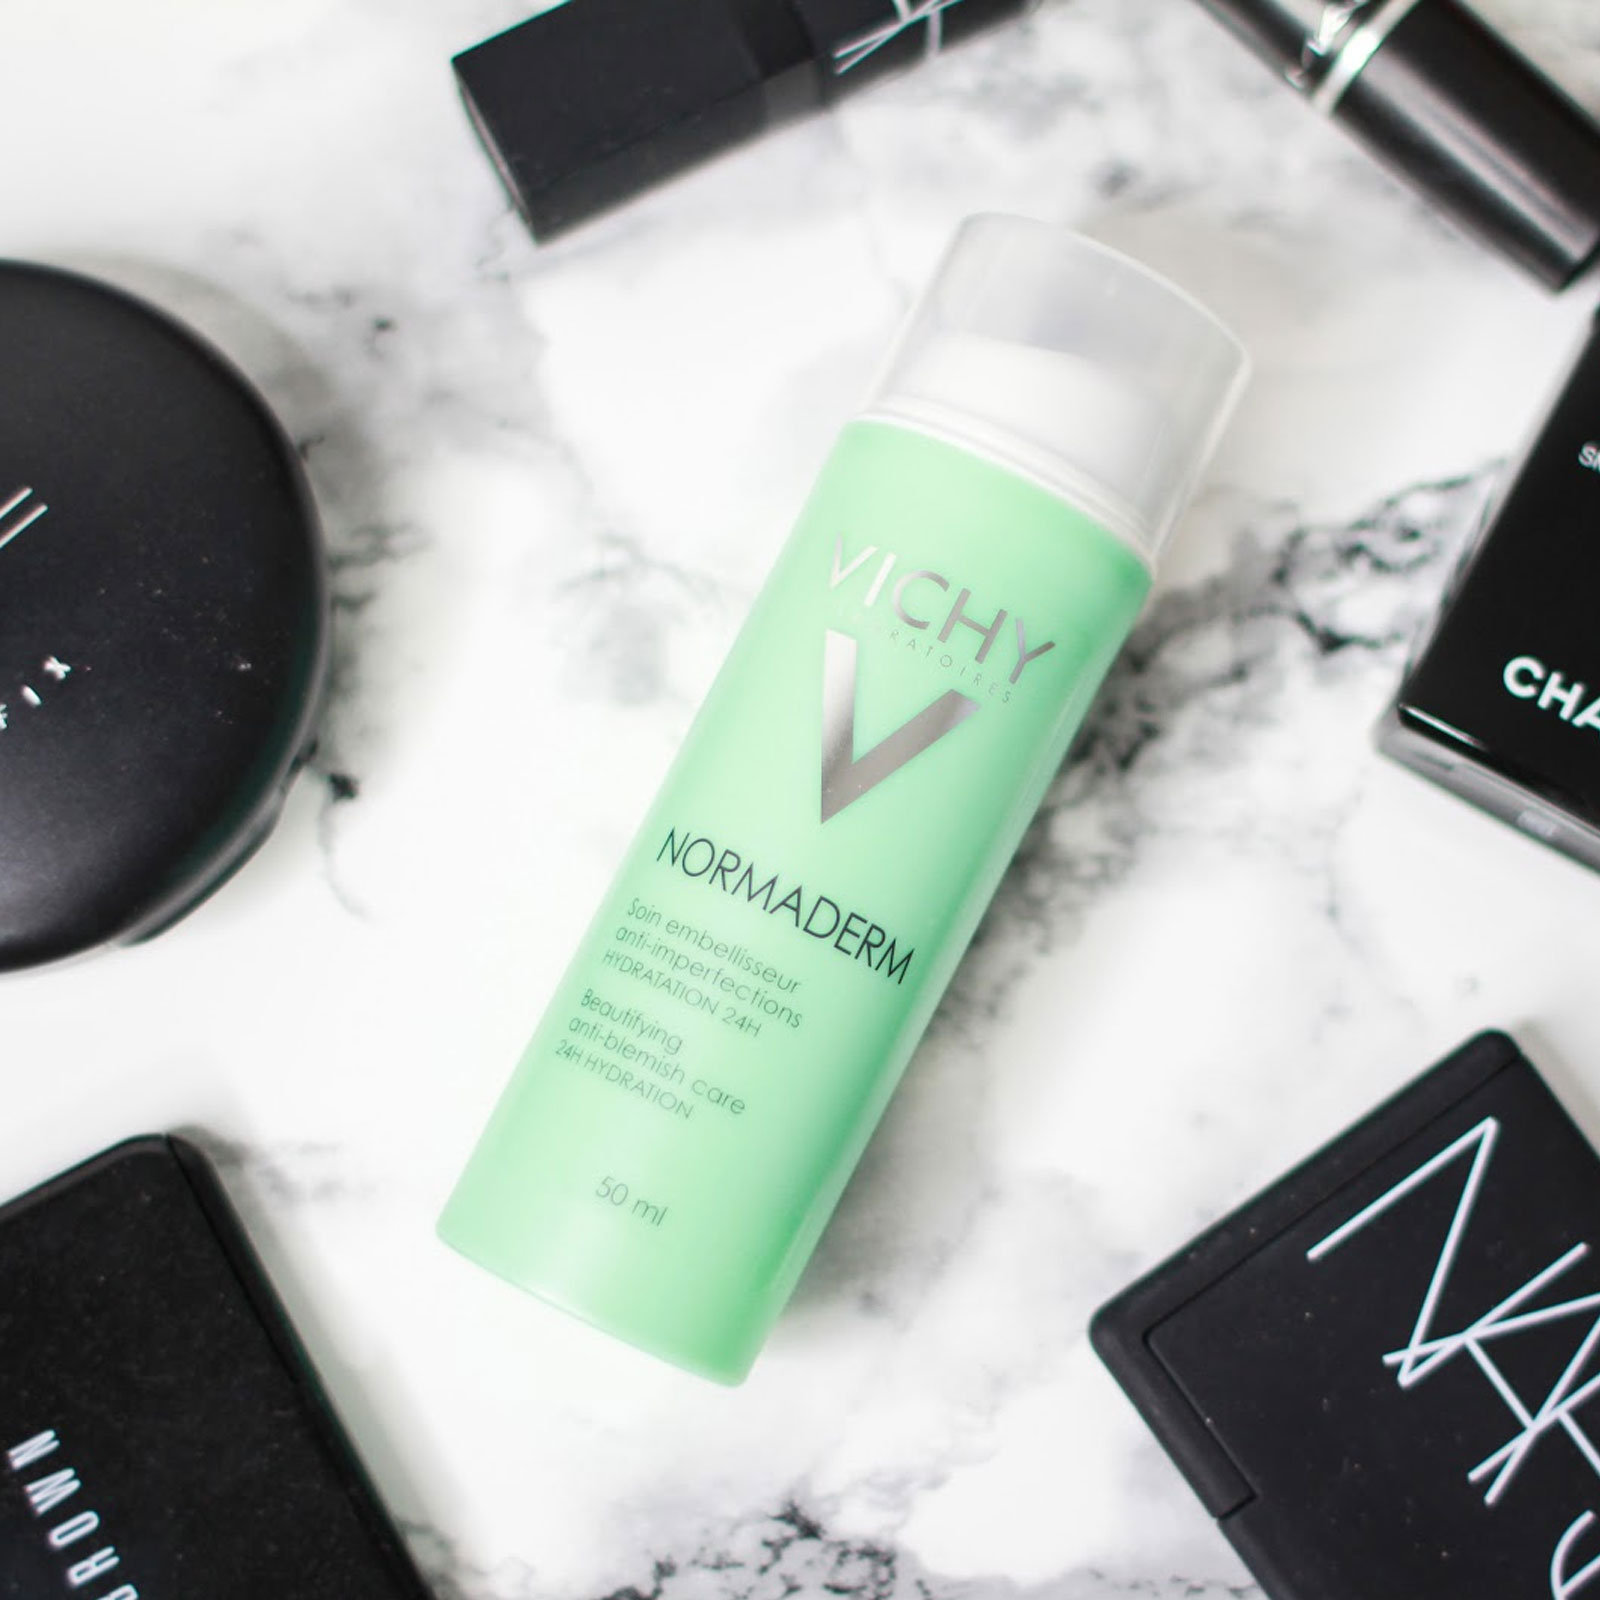 Vichy Normaderm Beautifying Anti-Blemish Care Review